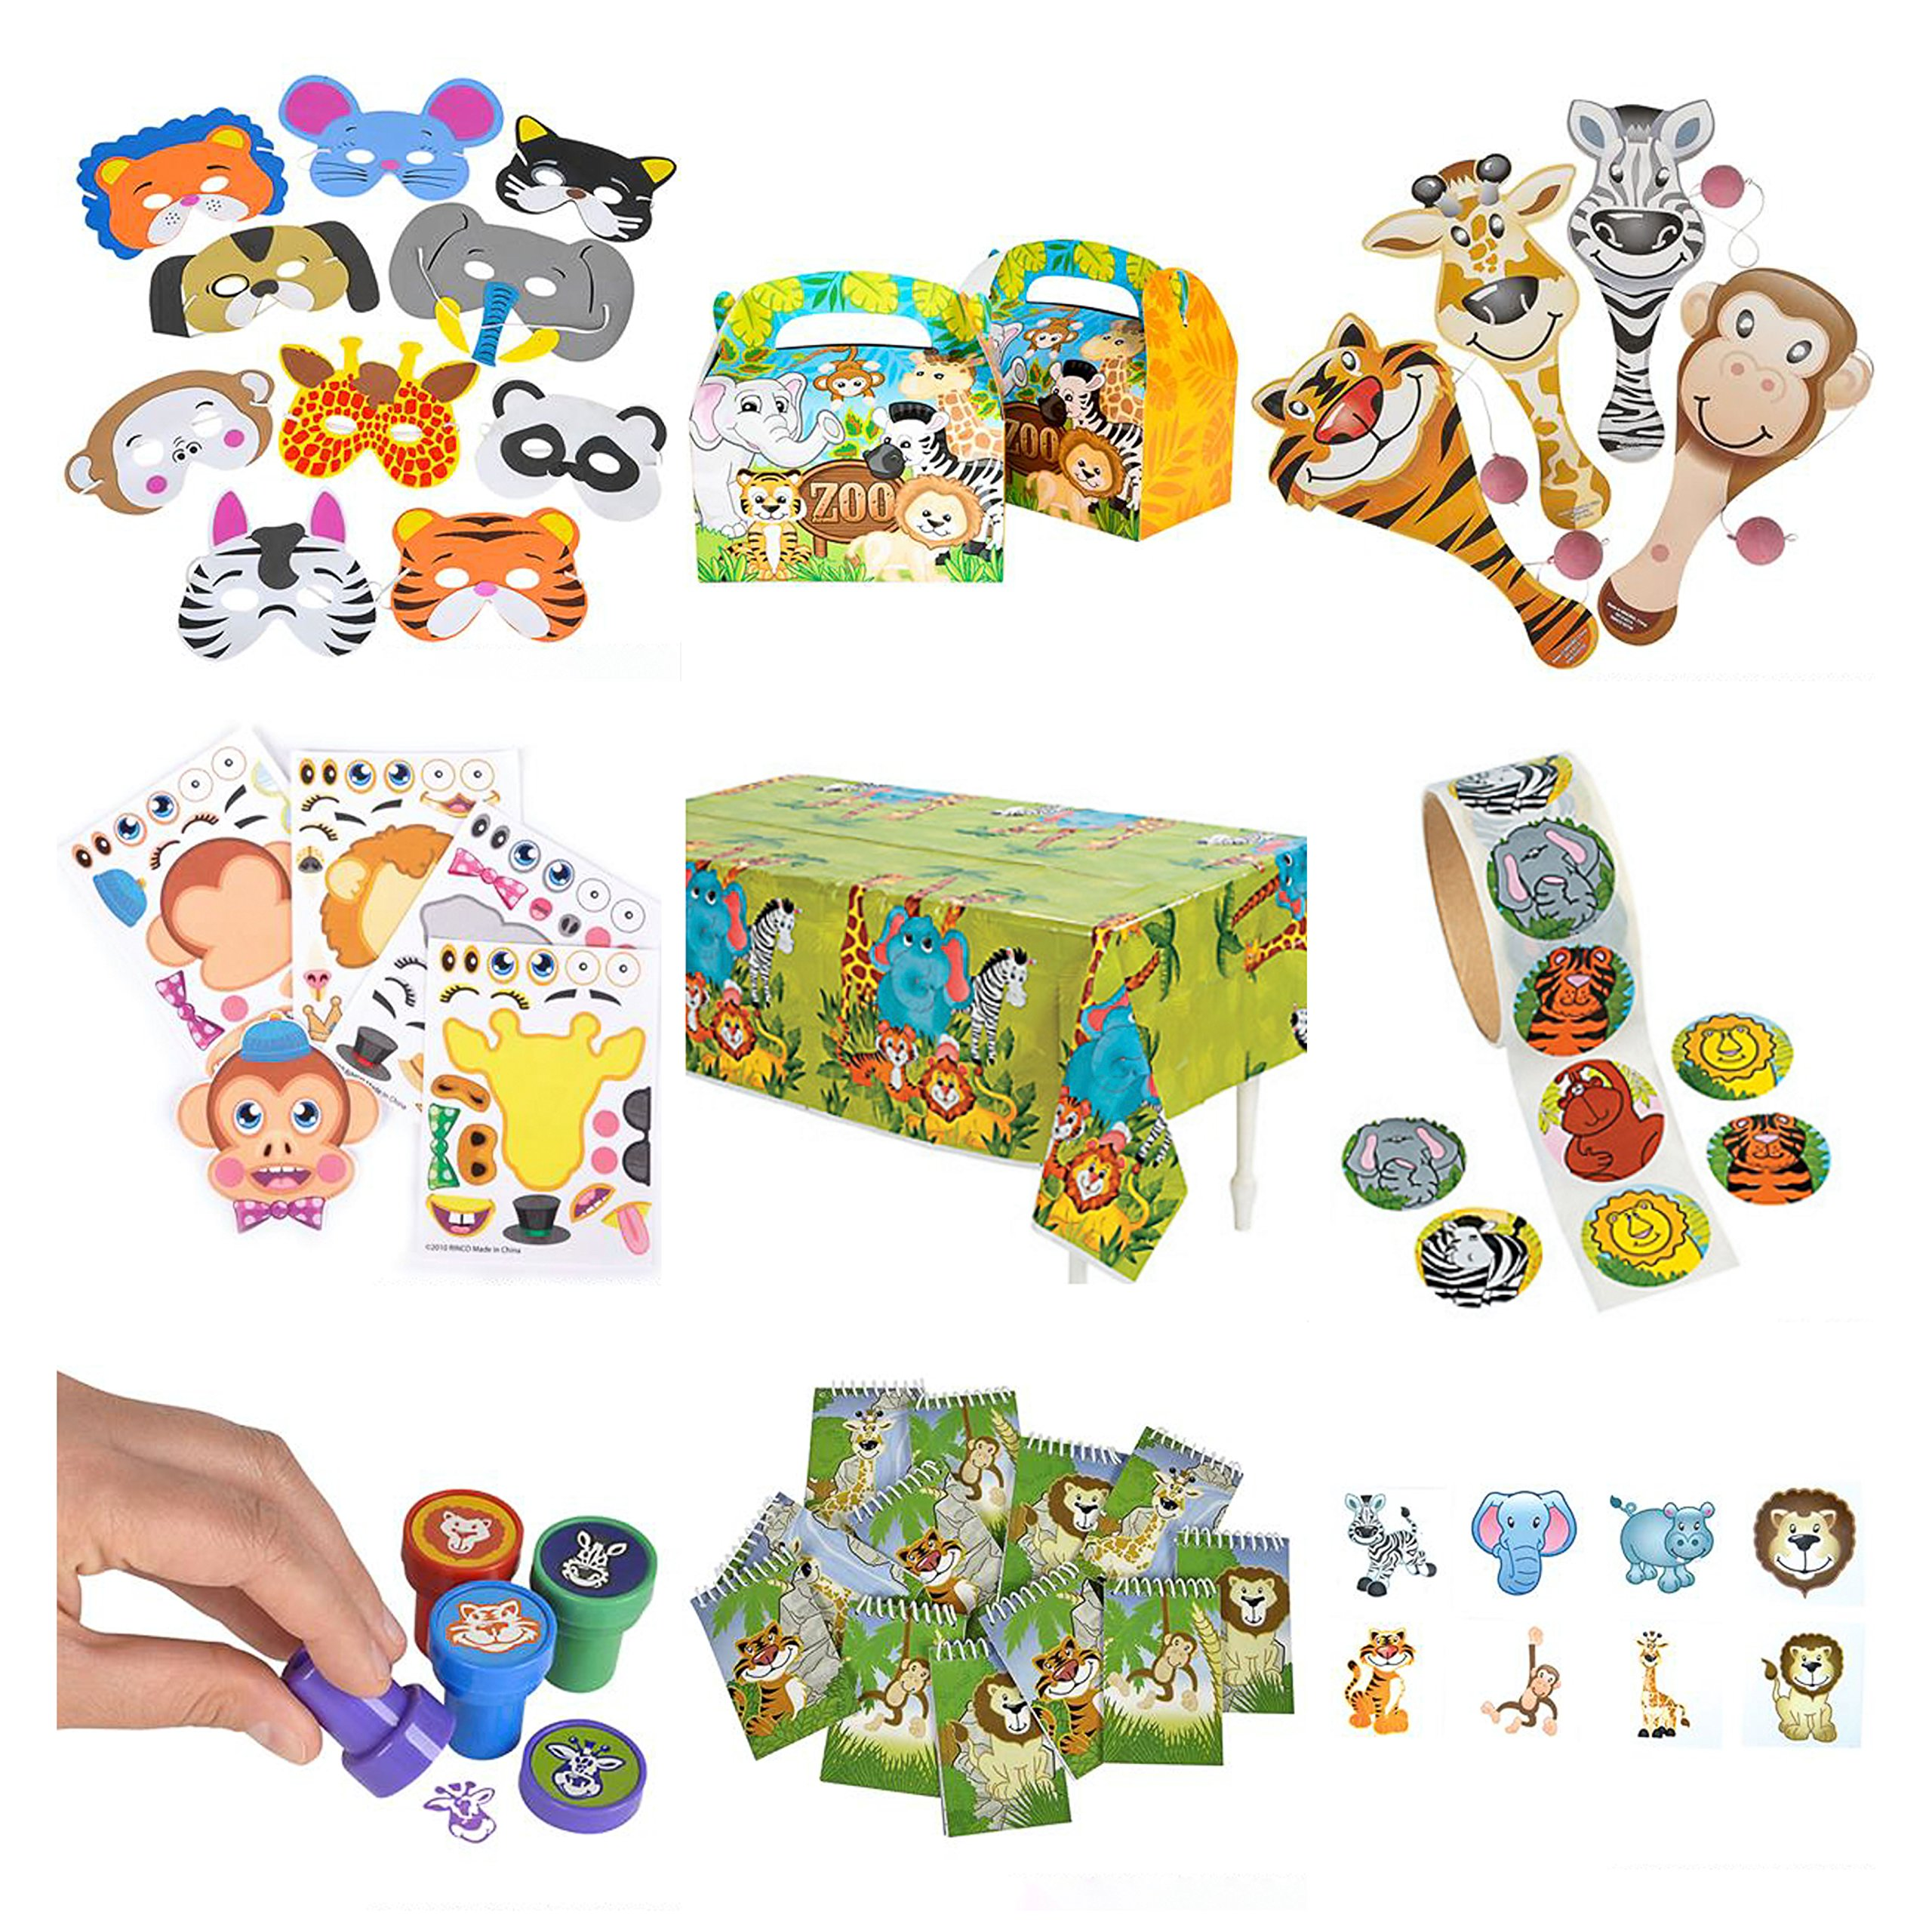 Zoo Animal & Safari Party Supplies and Favors: 12 Treat Boxes, 12 Animal Masks, 144 Tattoos, 12 Paddle Balls, 12 Make Zoo Stickers, 12 Notebooks, 100 Stickers, 24 Stampers, 1 Zoo Animal Tablecloth